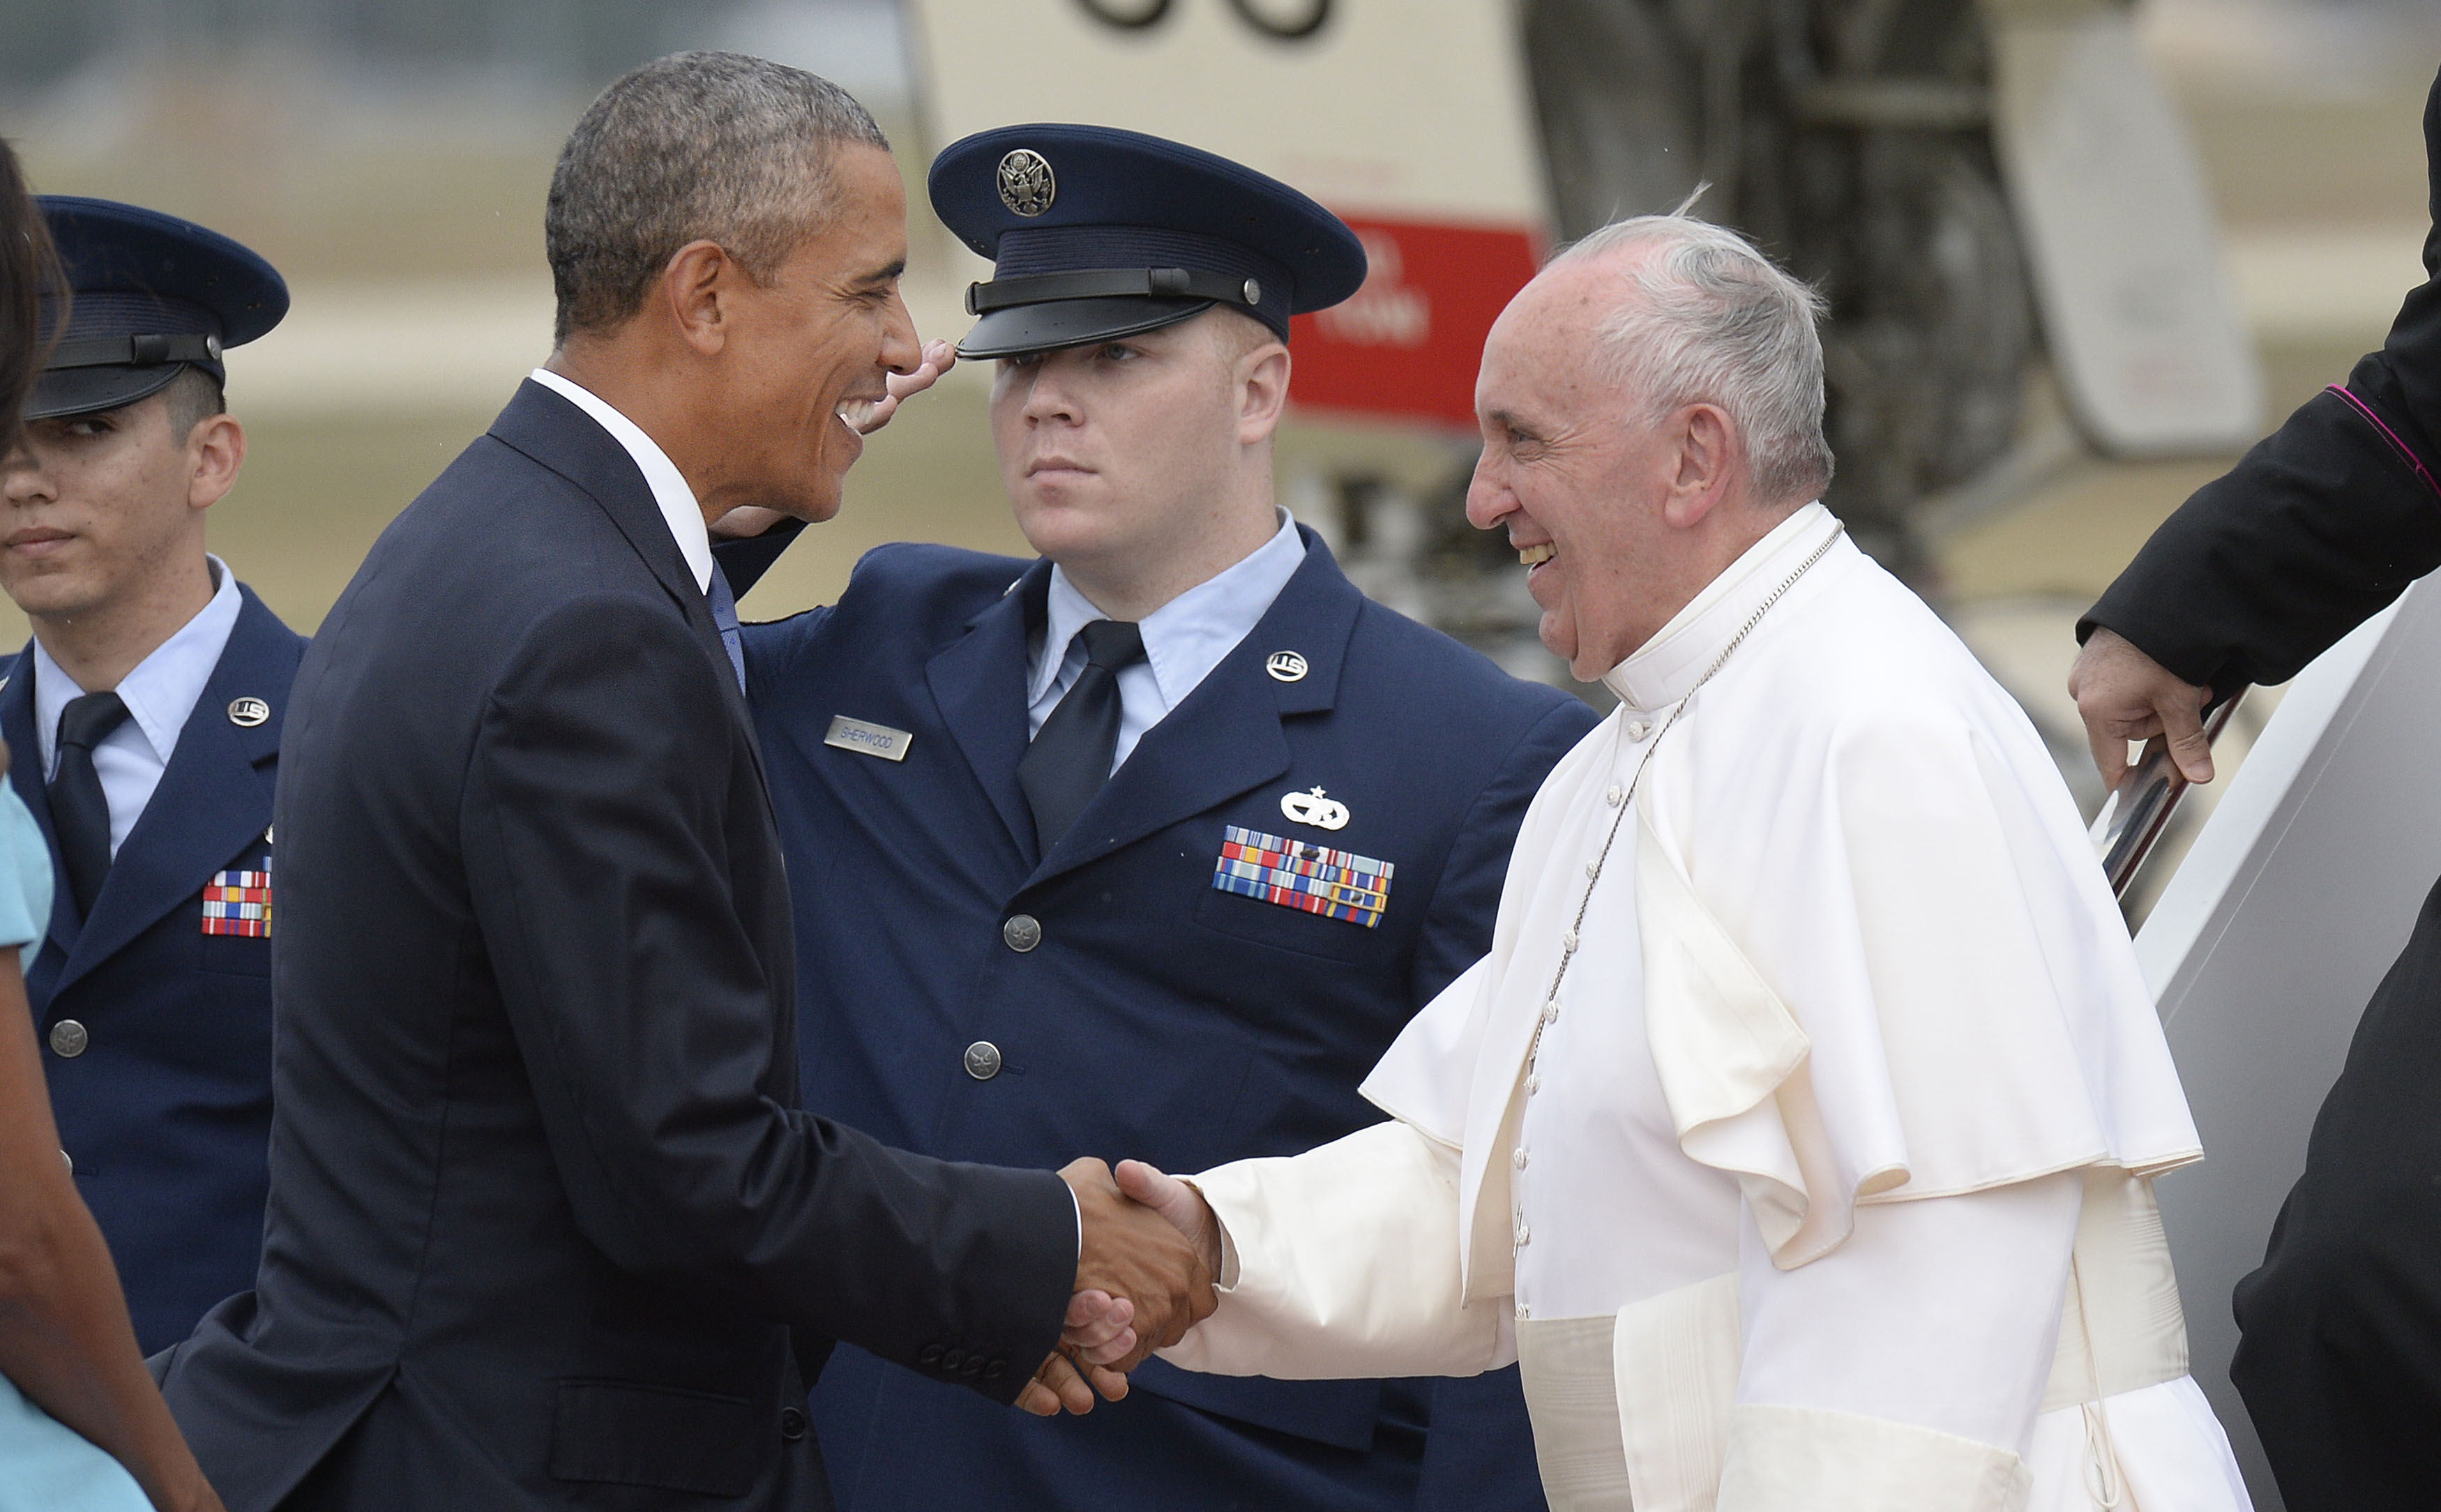 United States President Barack Obama greets His Holiness Pope Francis on his arrival at Joint Base Andrews in Maryland on September 22, 2015. The Pope is making his first trip to the United States on a three-city, five-day tour that will include Washington, D.C., New York City and Philadelphia.